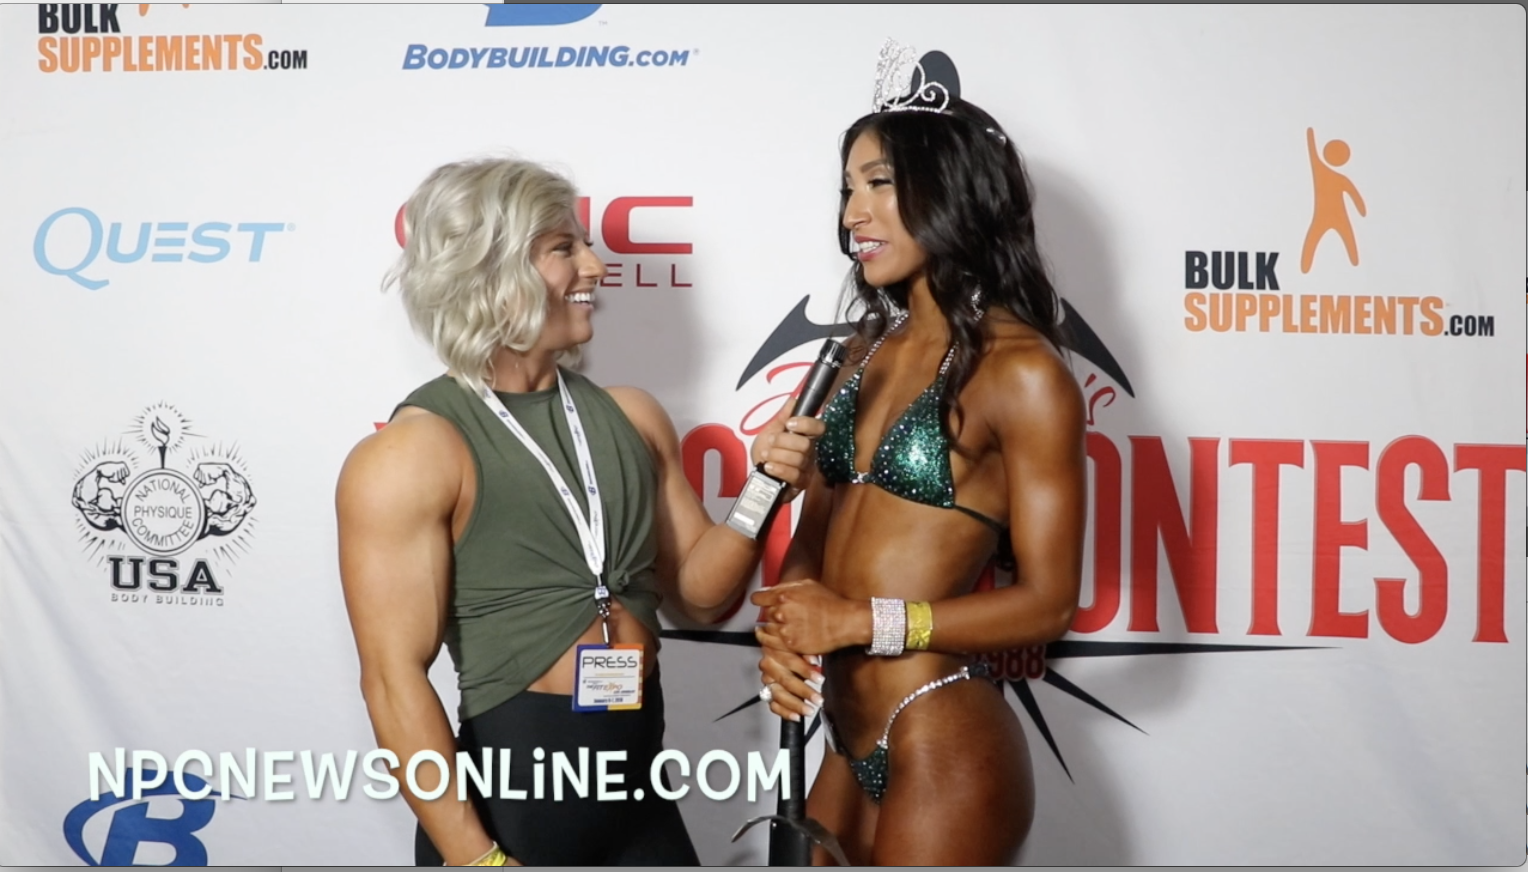 2018 NPC Muscle Contest Challenge Bikini Winner Lyzette Gonzalez Contest Video